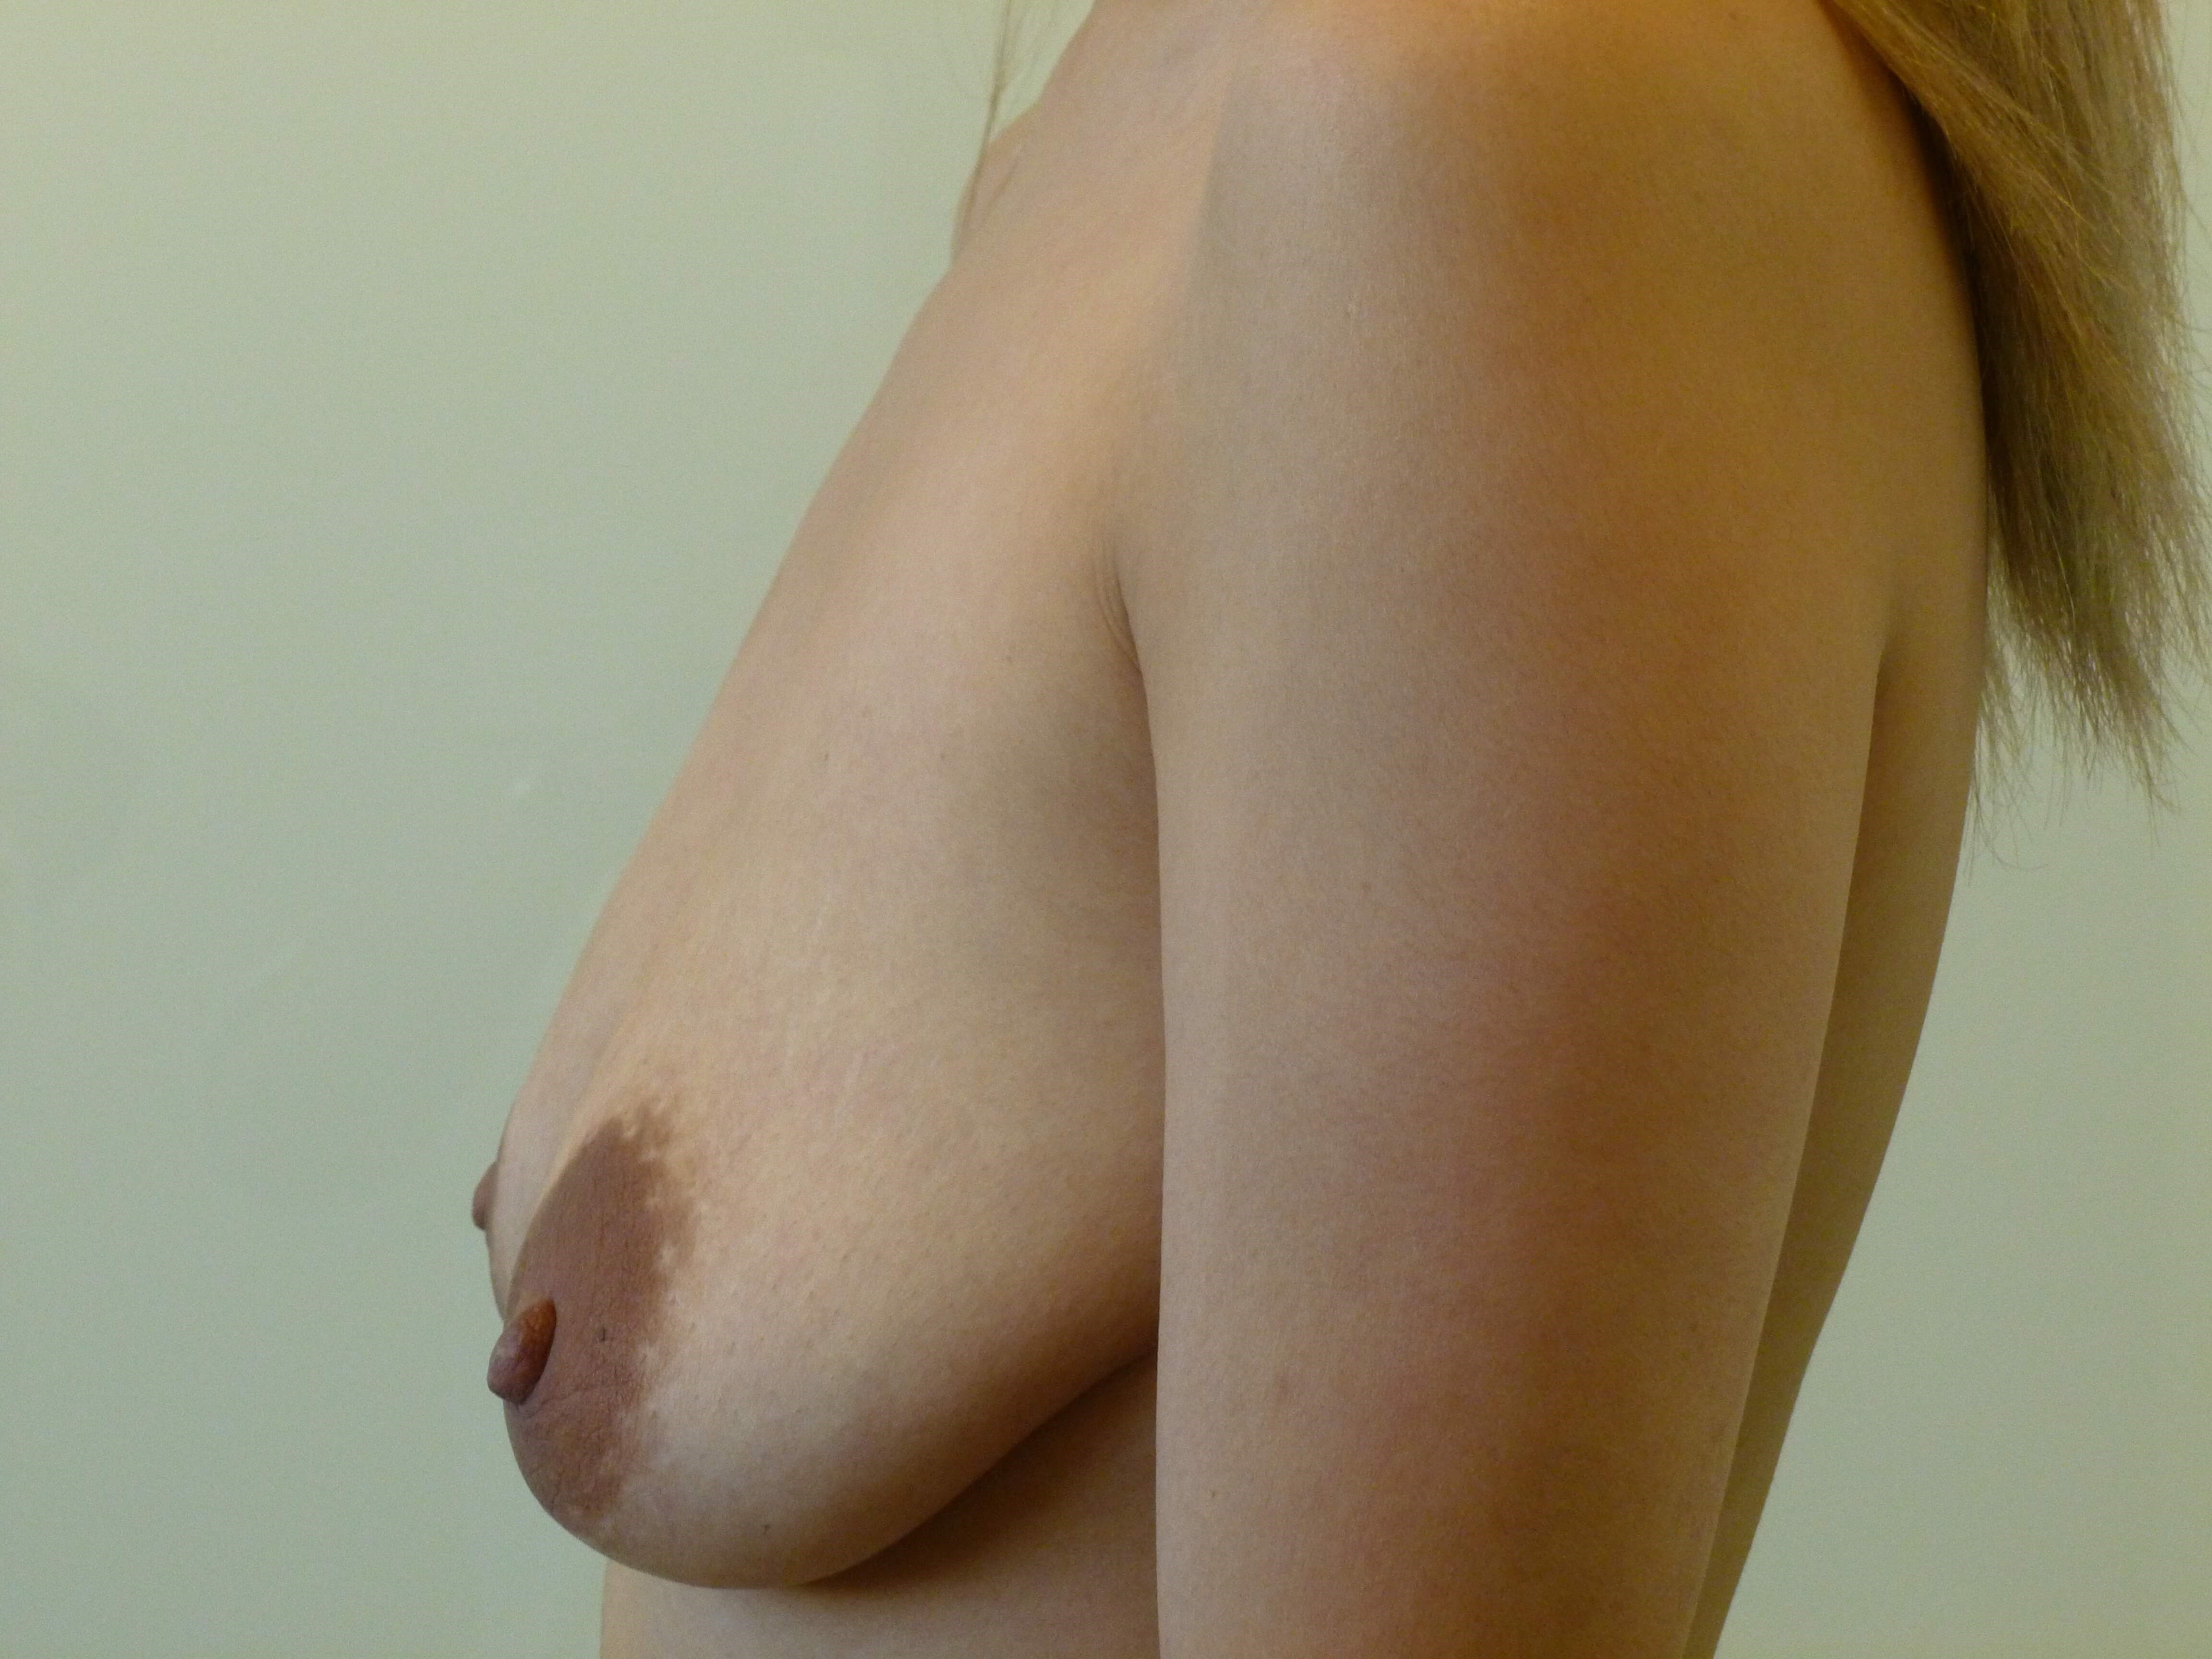 BA & Vertical Lift, Left Side Before: Breast Sagging